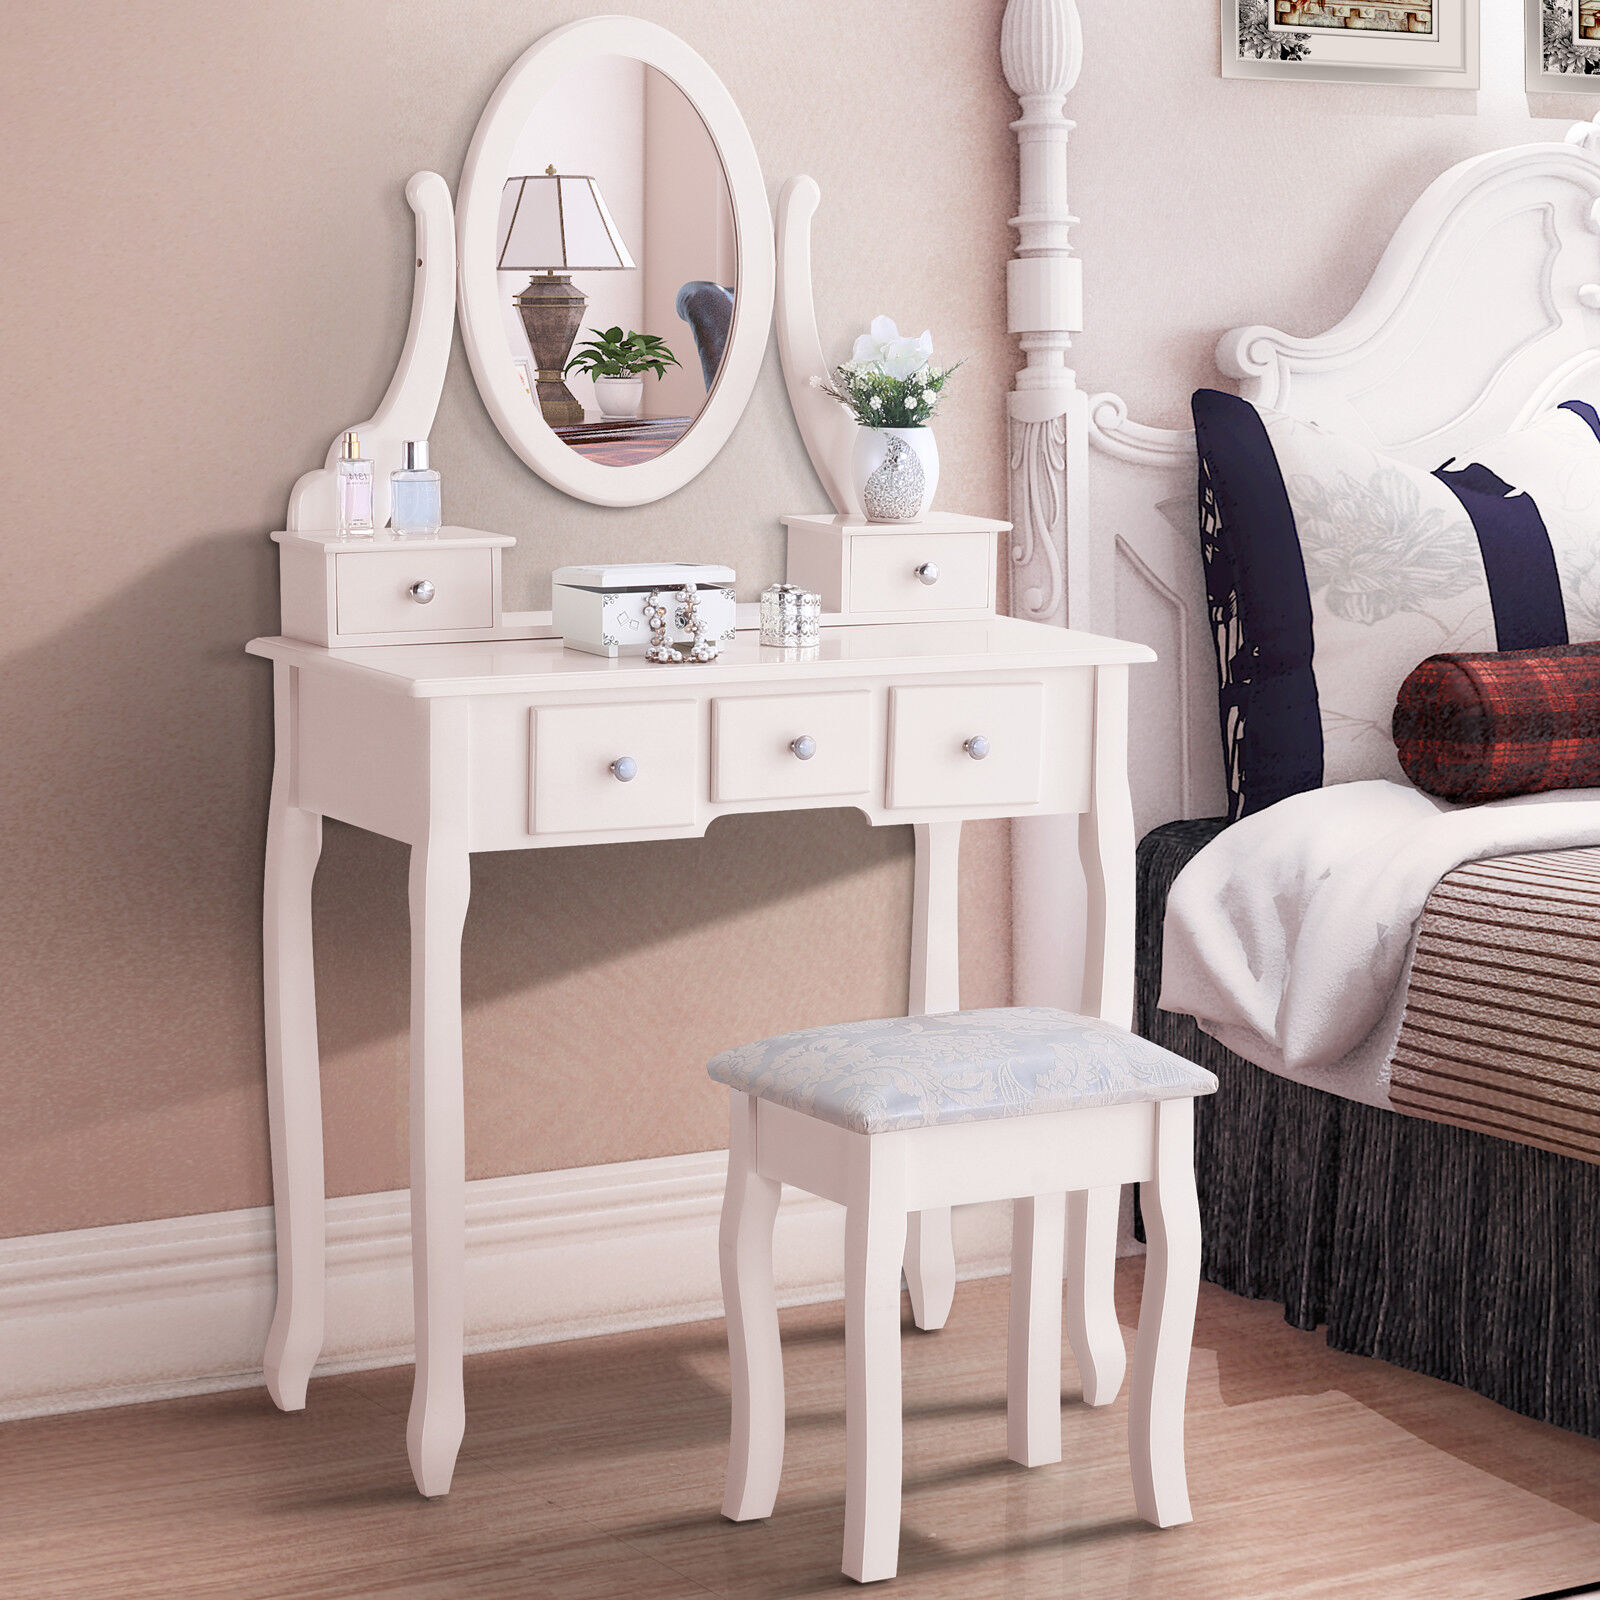 White Dressing Table Oval Mirror 5 Drawers Vanity Makeup Desk And Stool Set